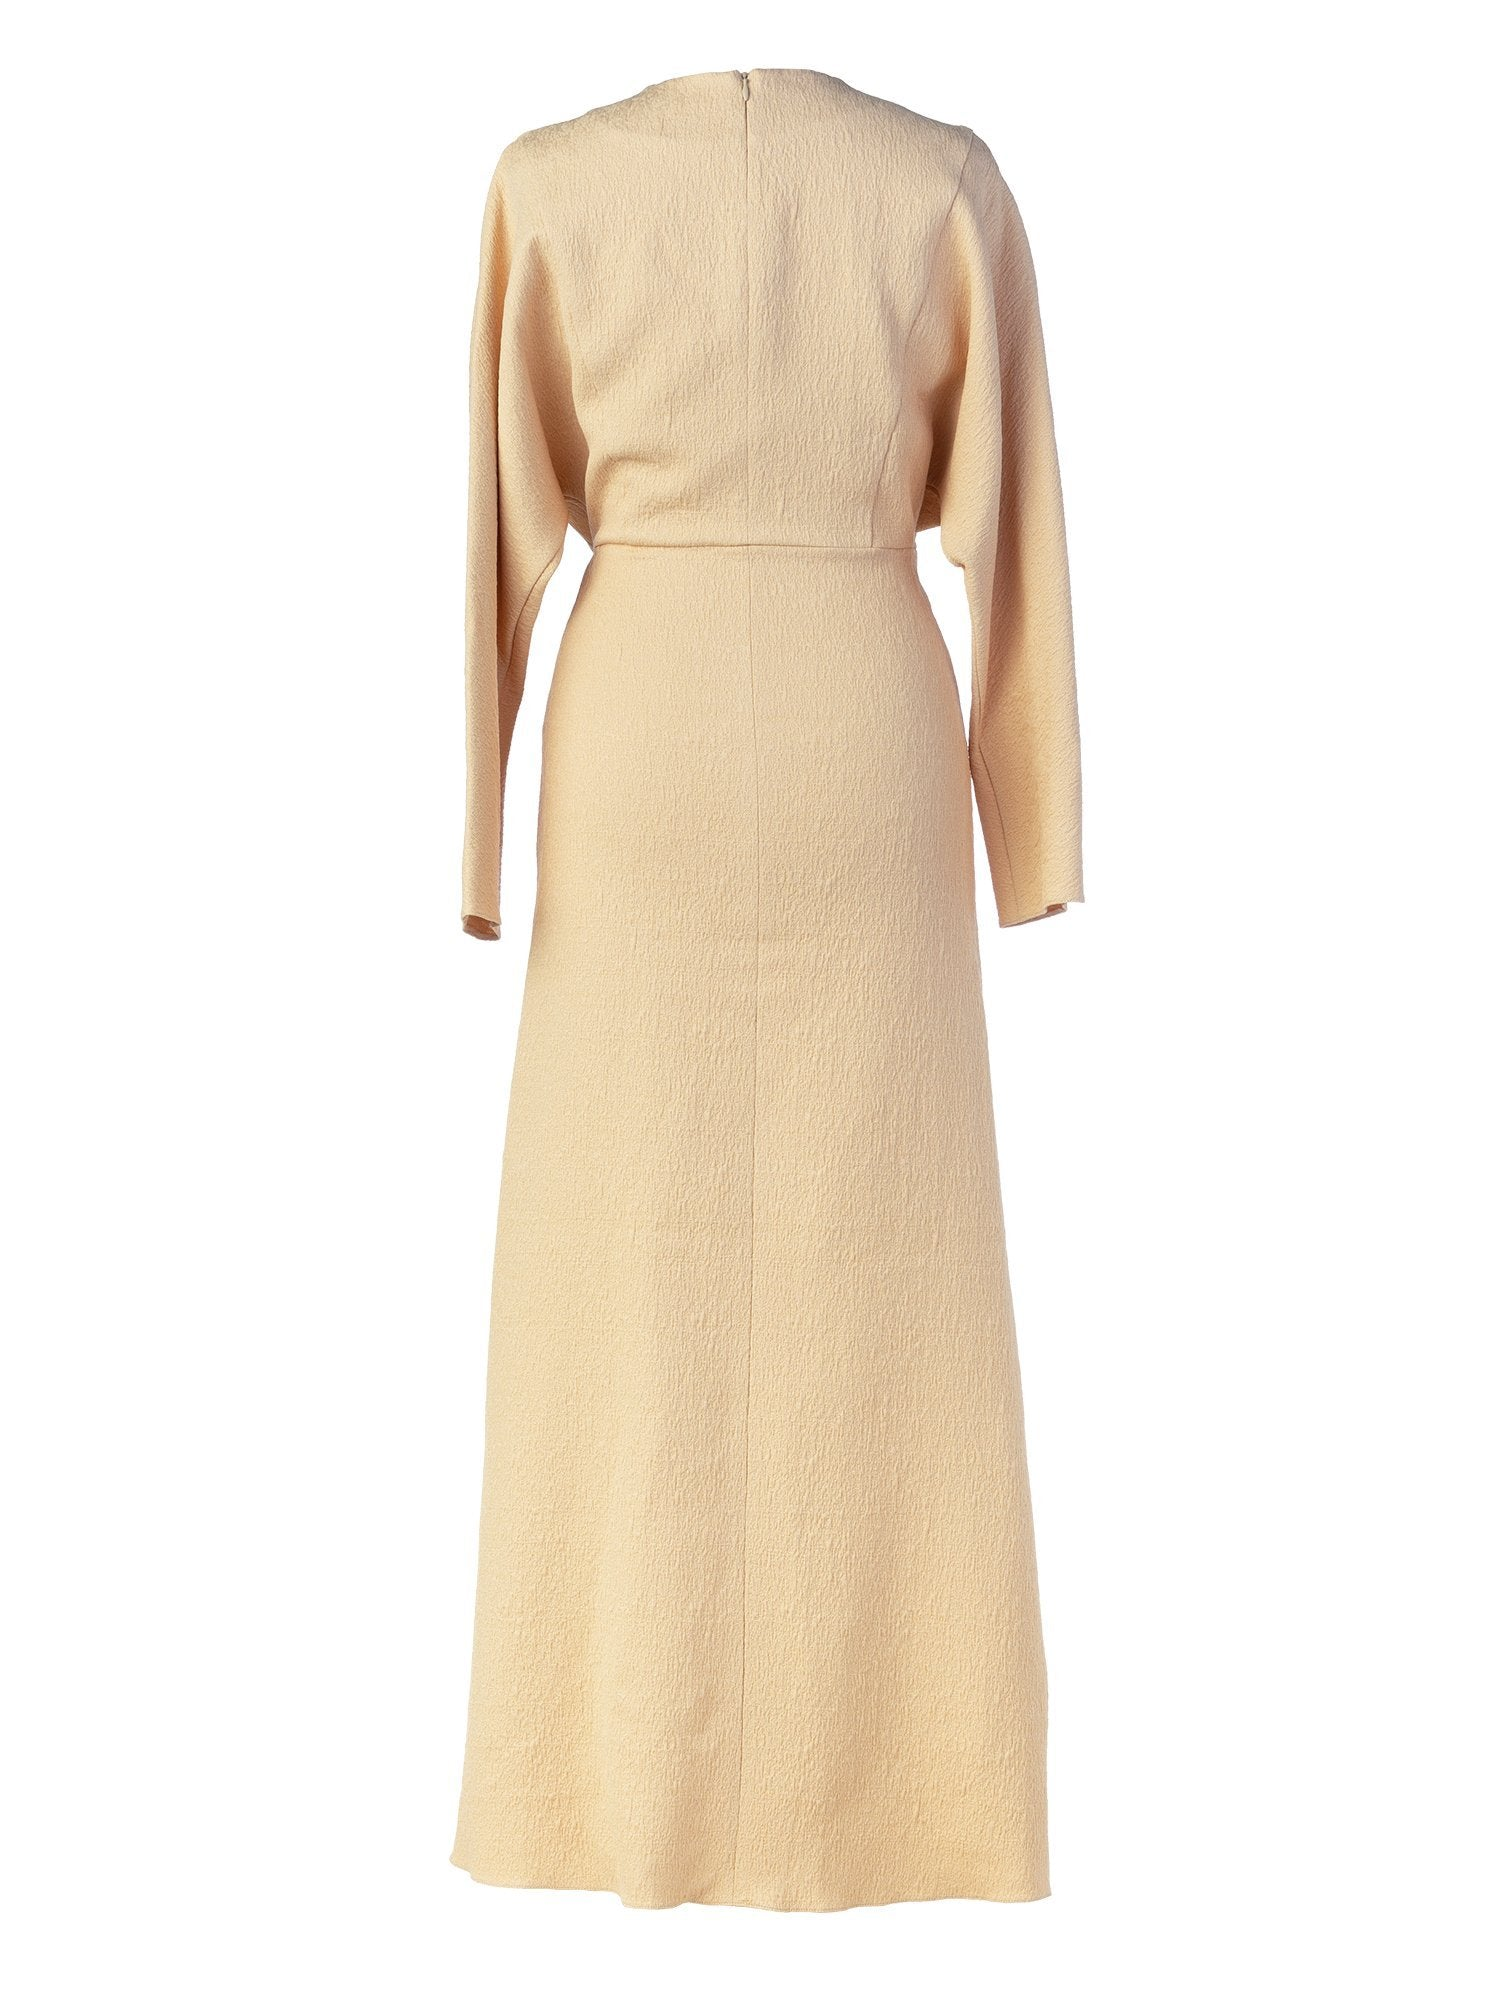 Artemis Dress Beige Deitas Dresses